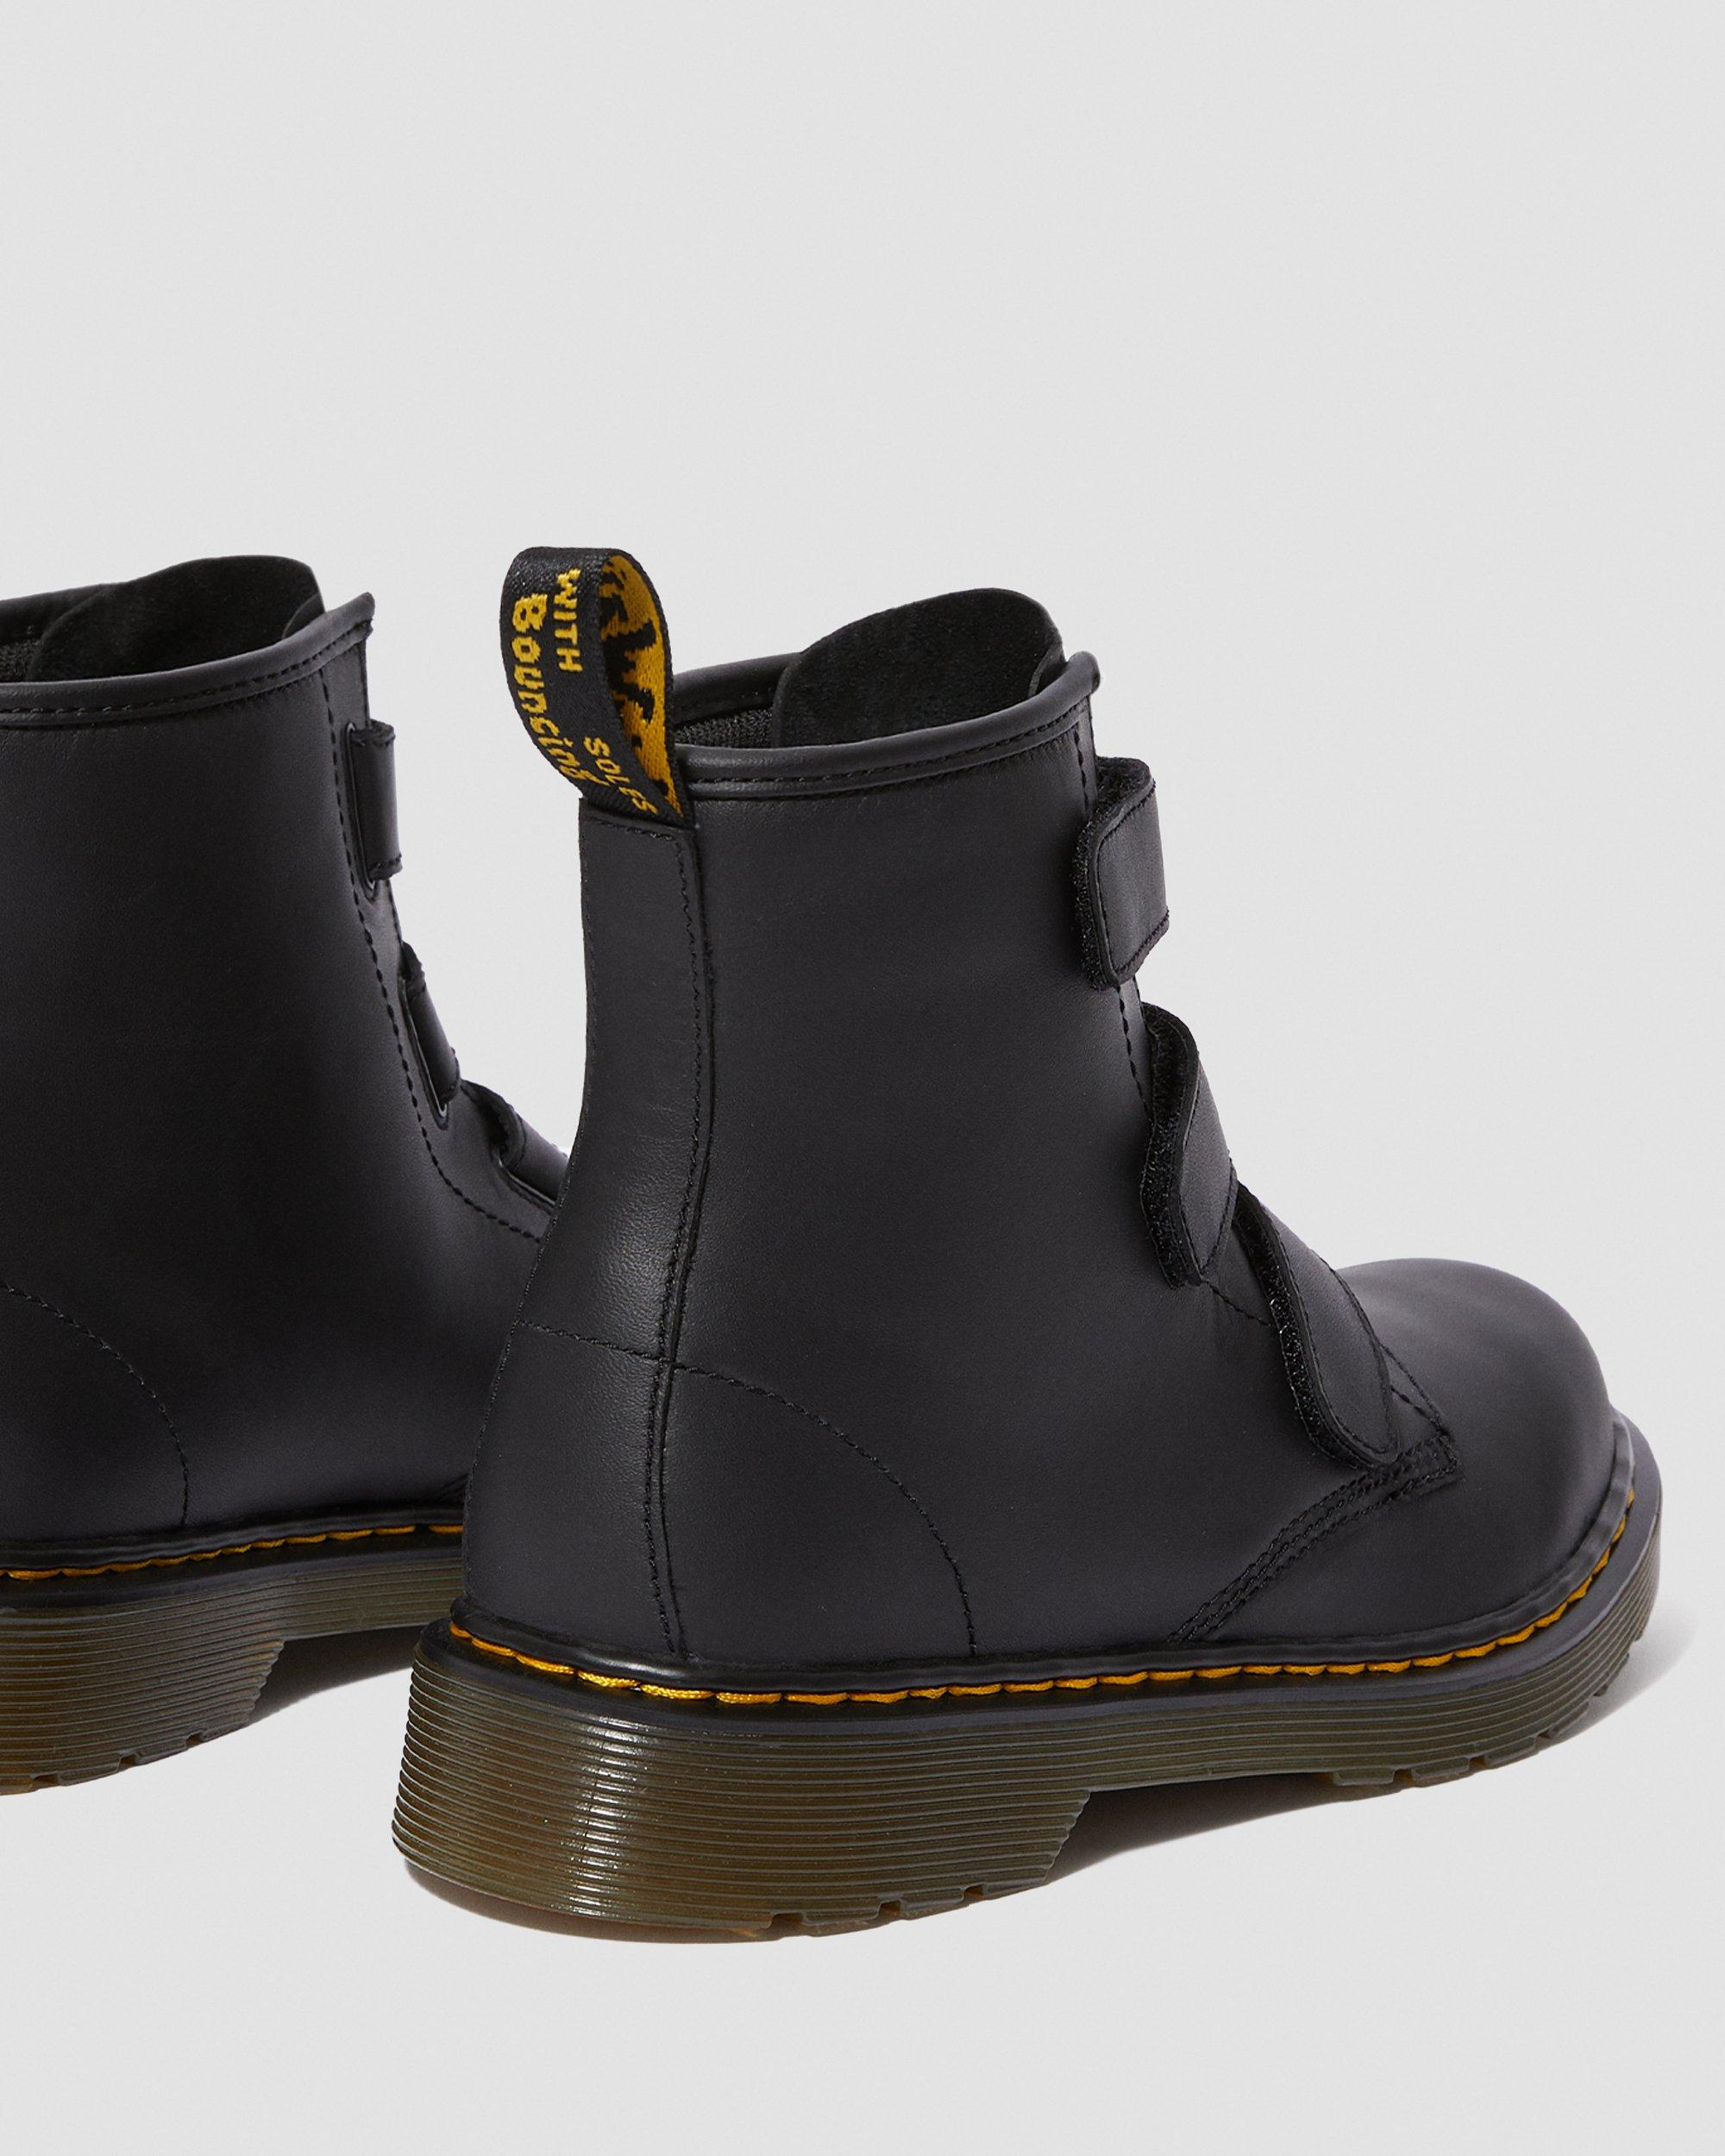 DR MARTENS YOUTH 1460 STRAP